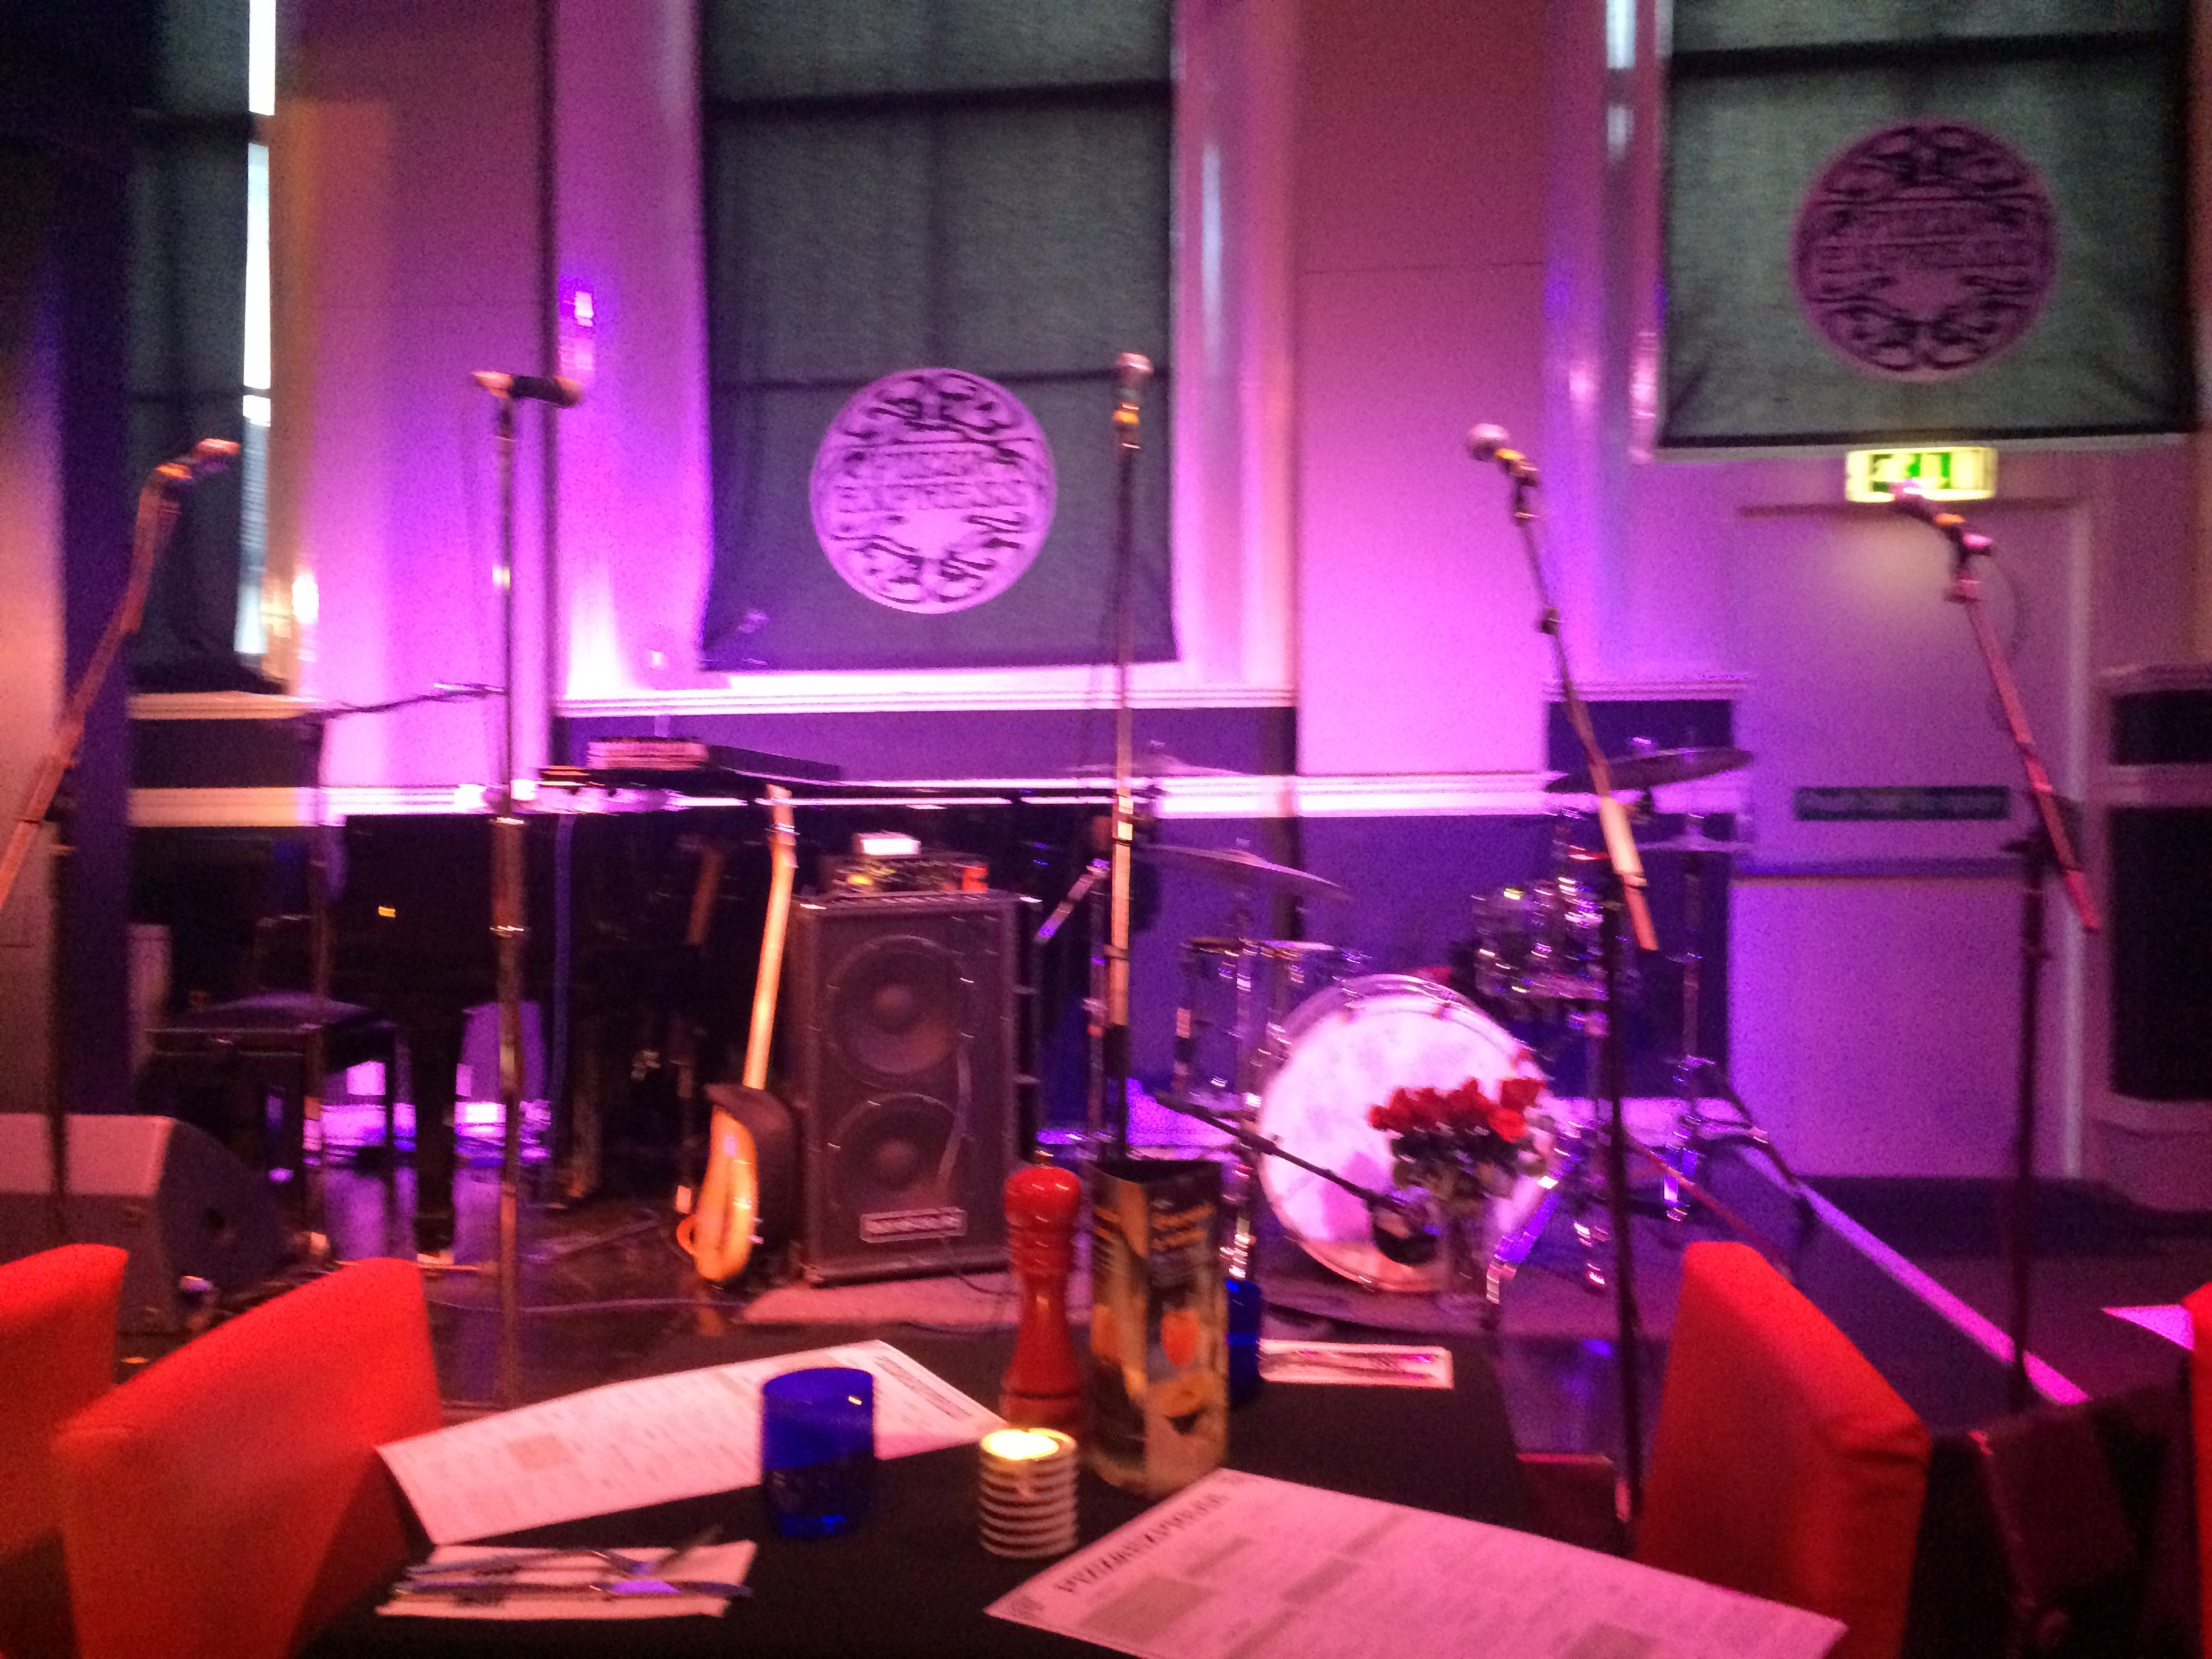 Souled Out Are Appearing At Pizza Express Maidstone Friday